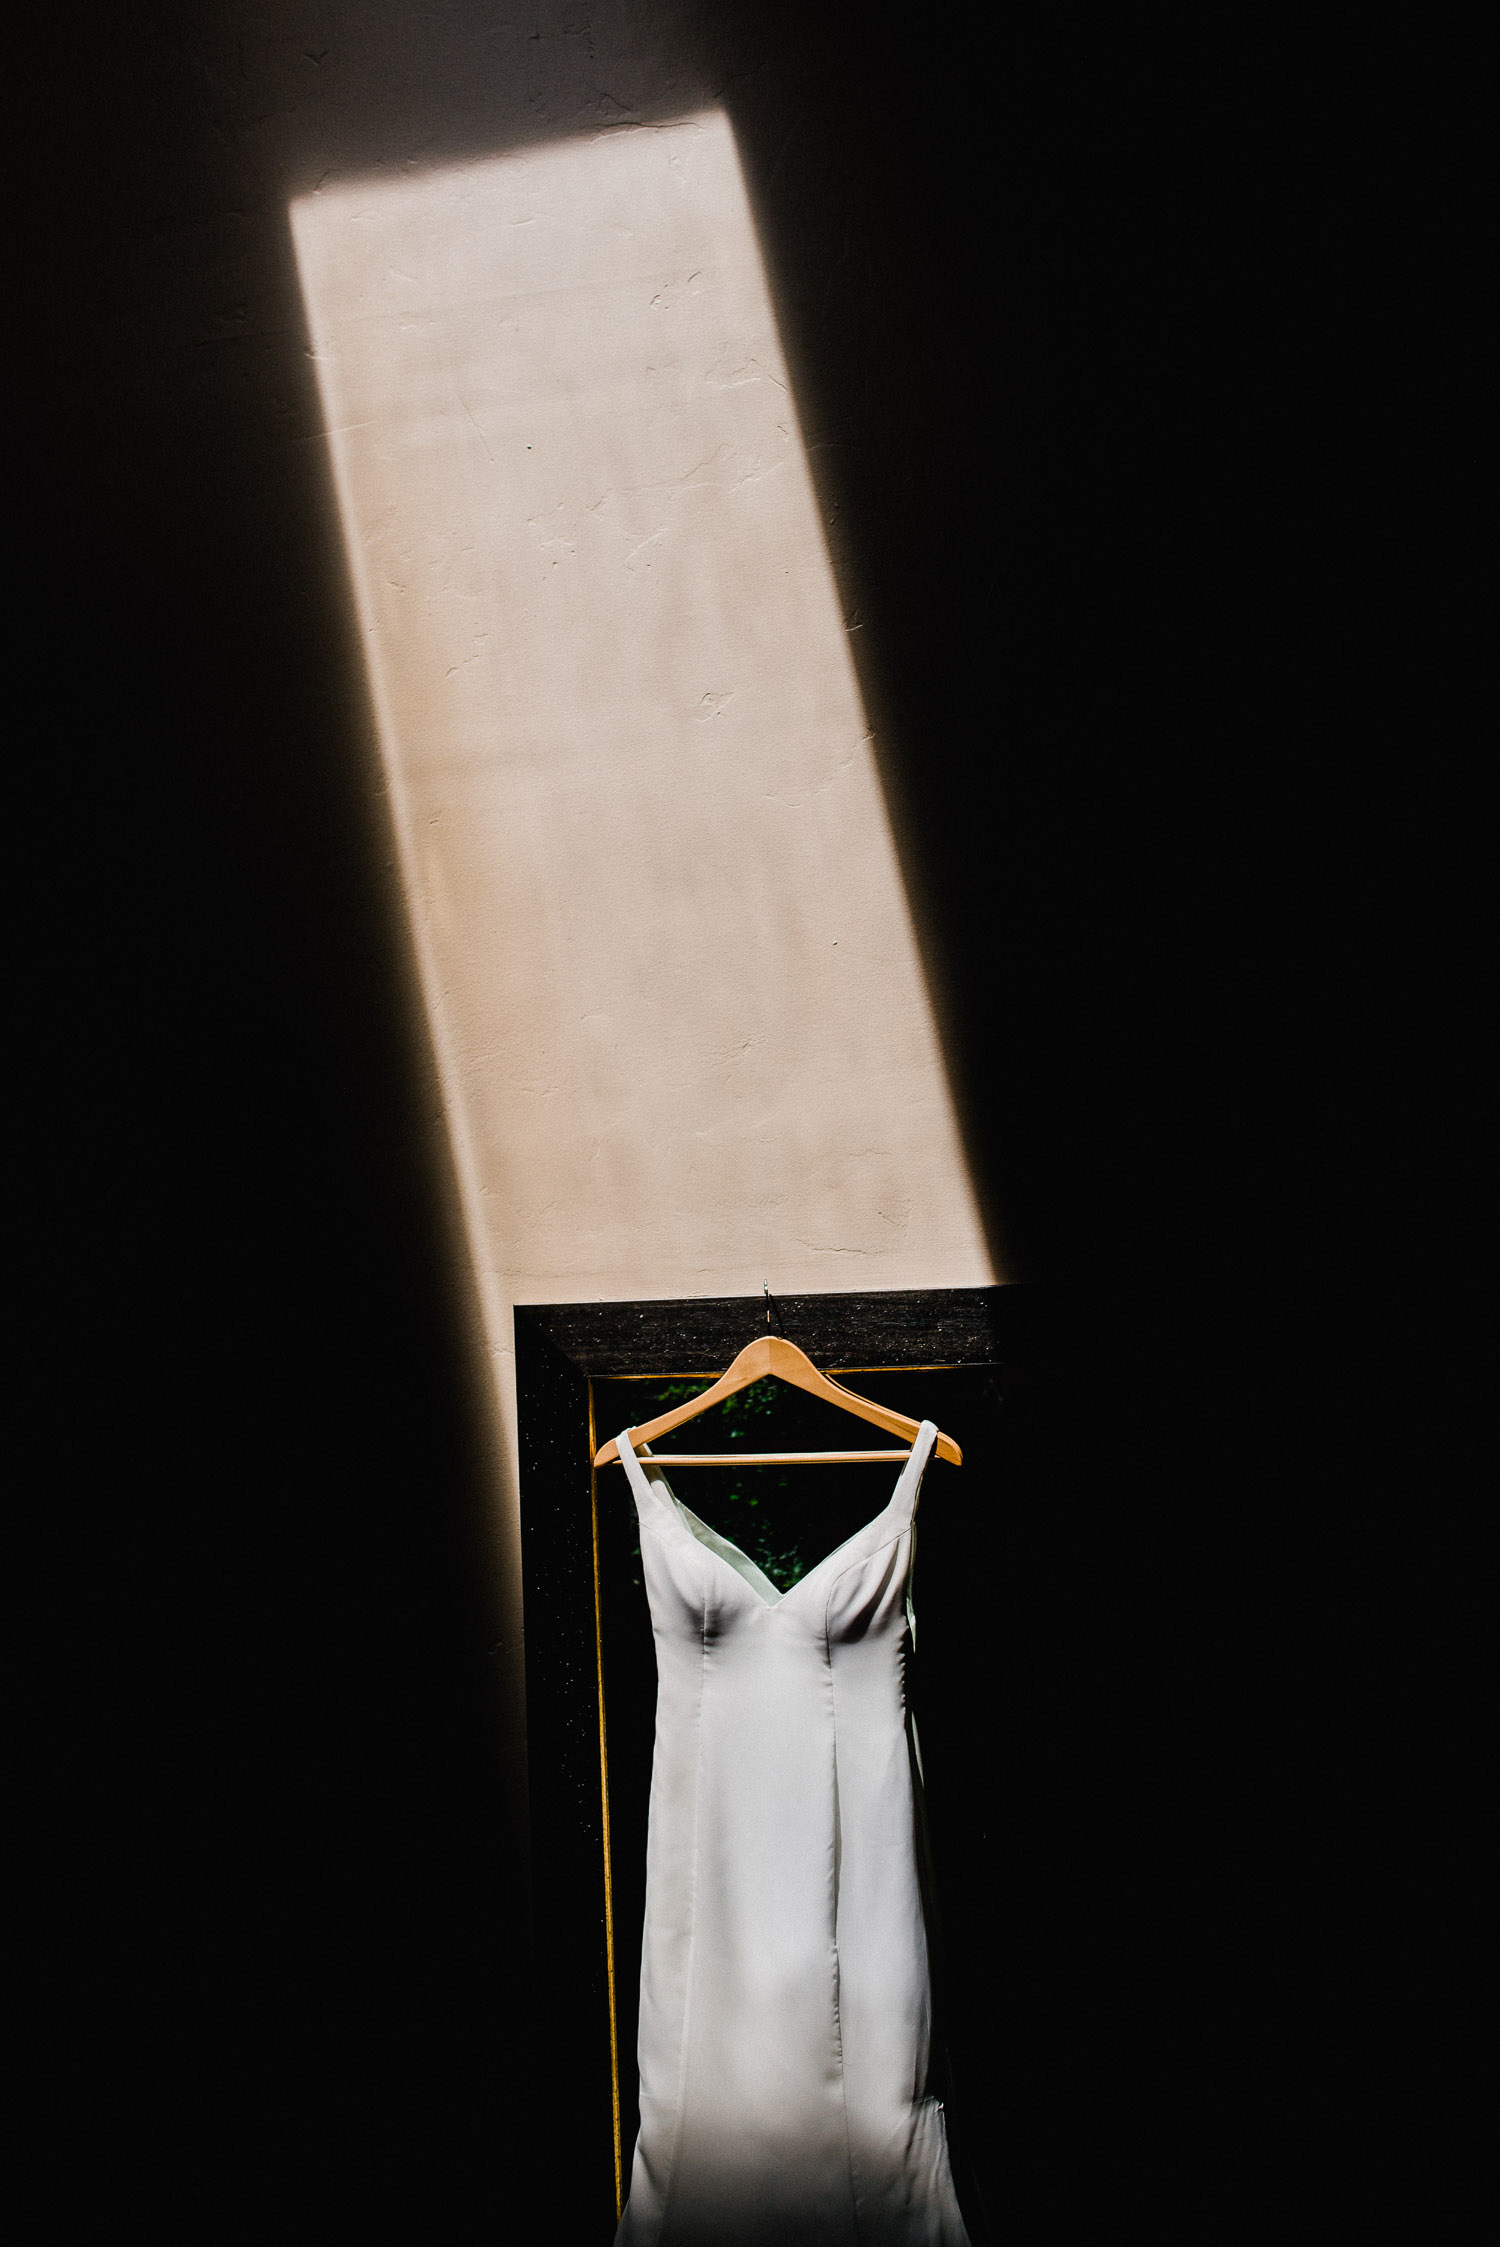 artistic photo of a wedding dress in dramatic lighting